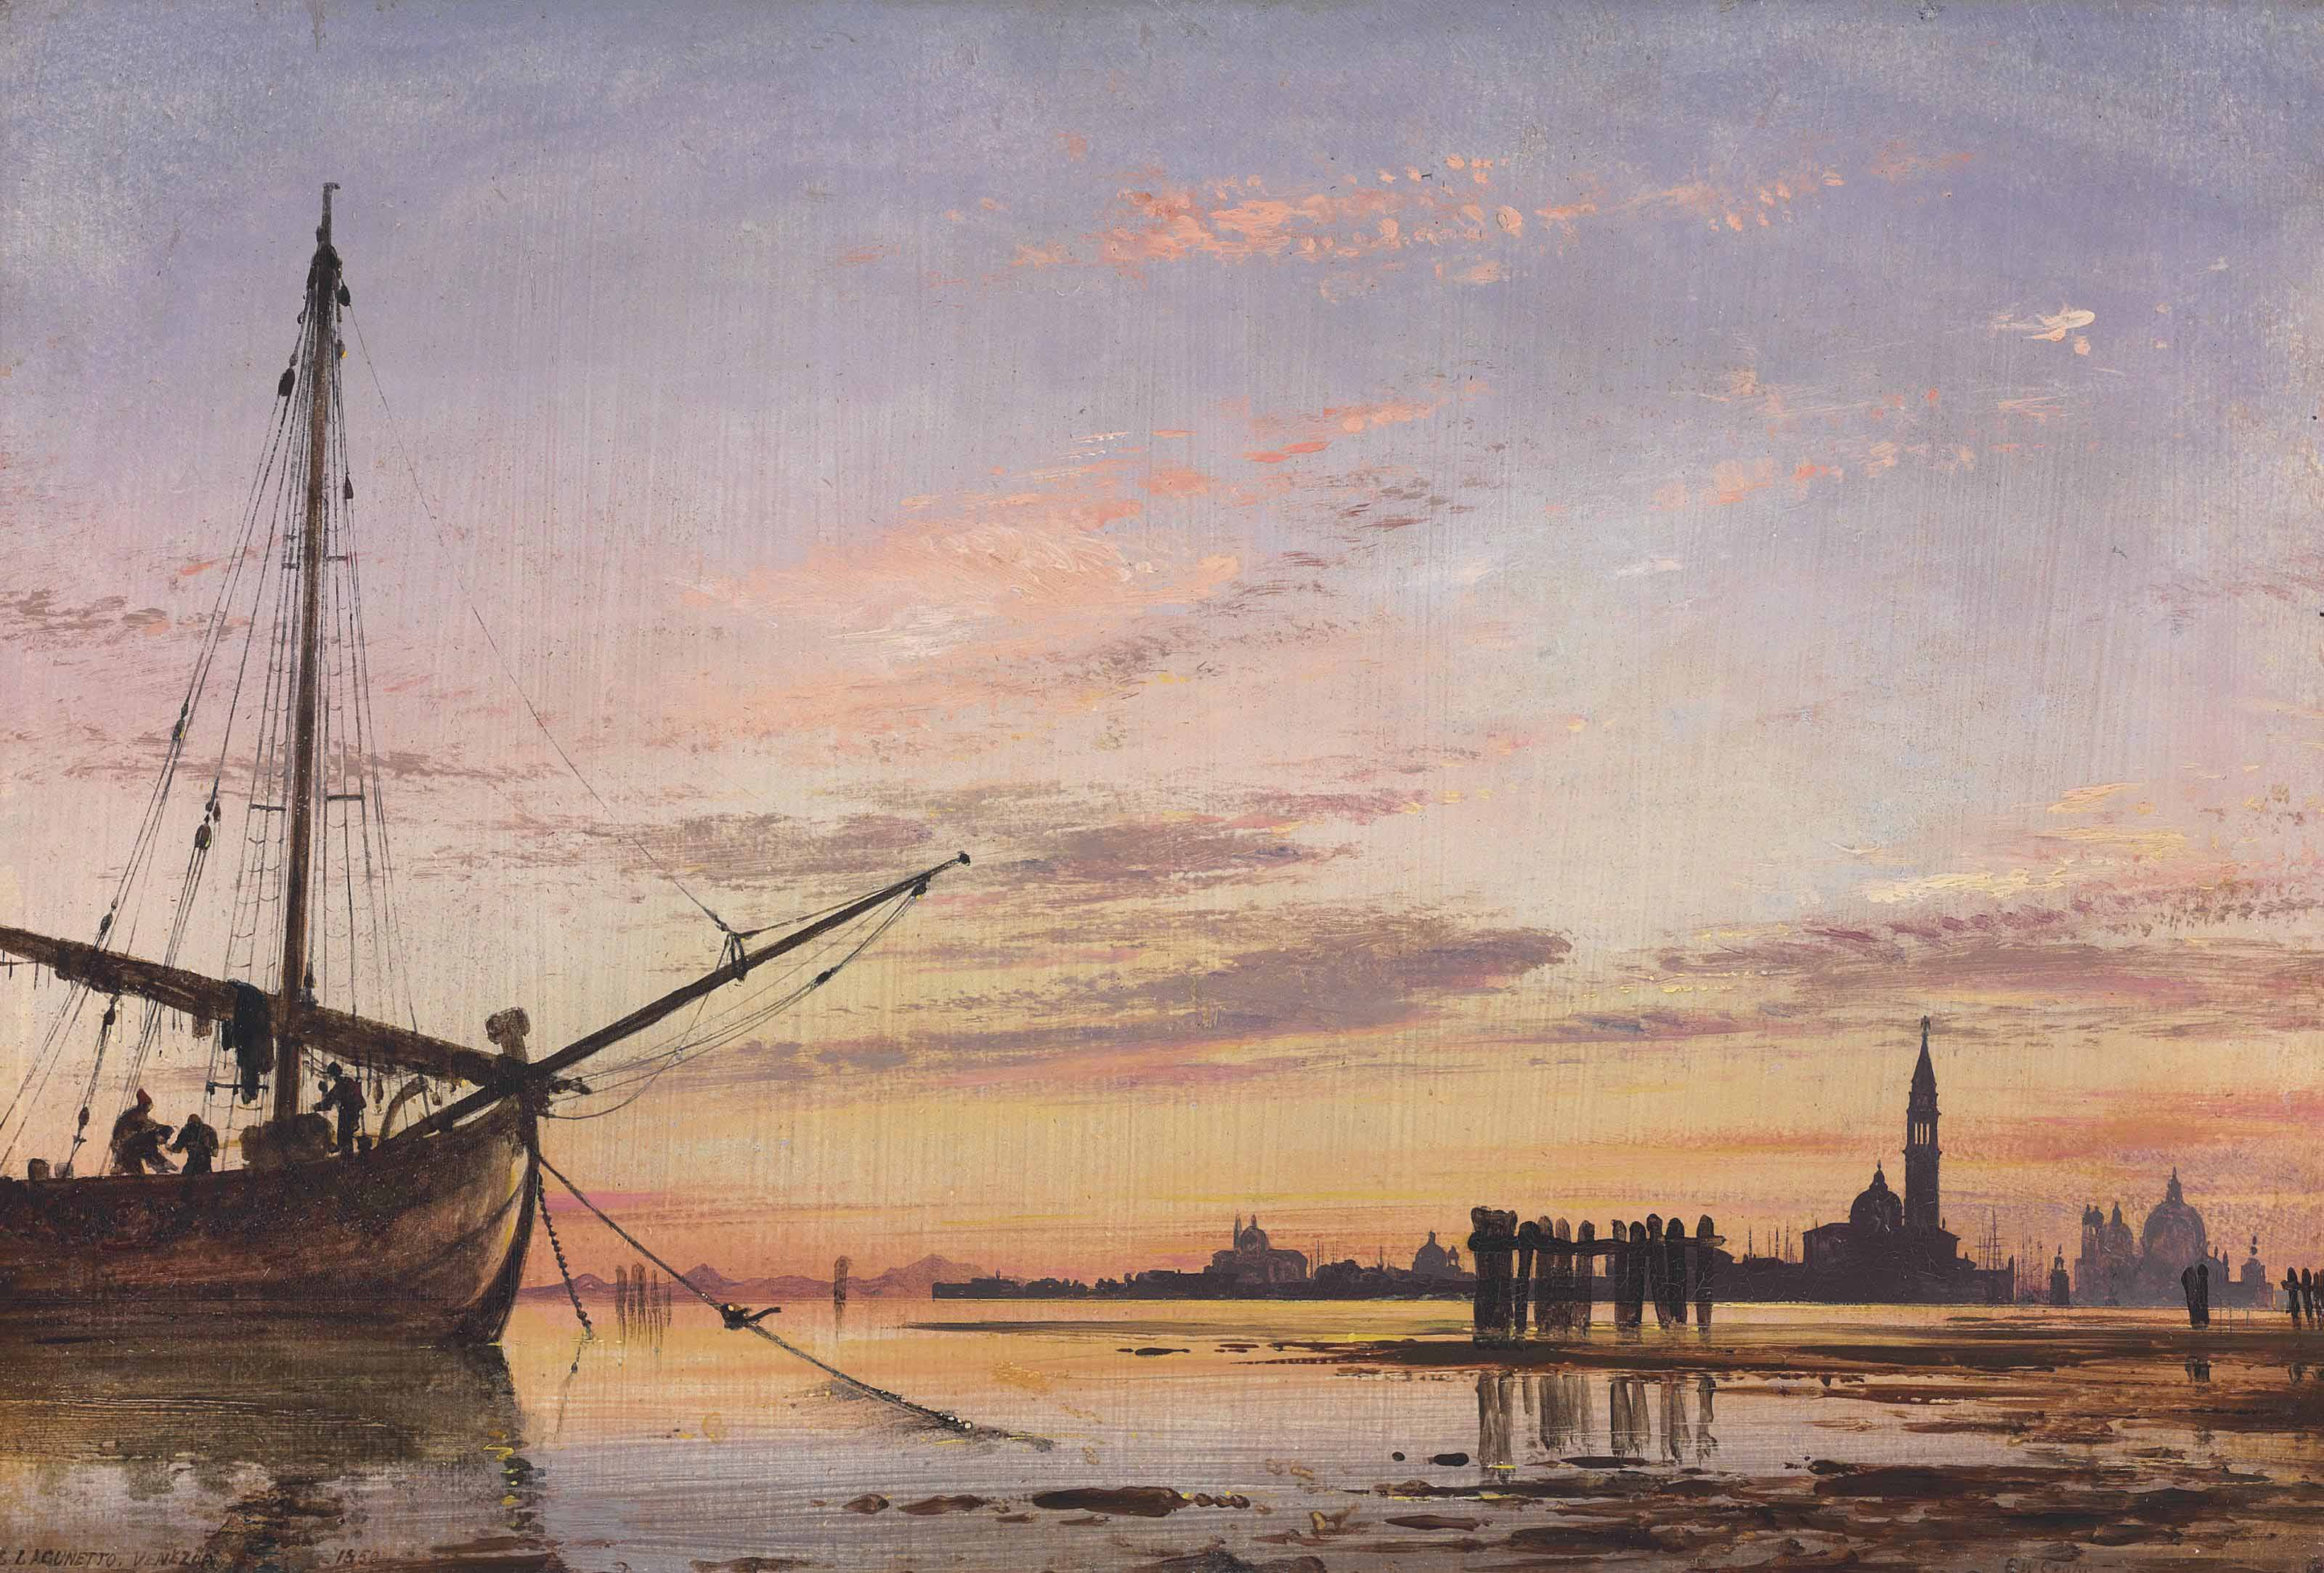 View across the Lagoon, Venice, sunset